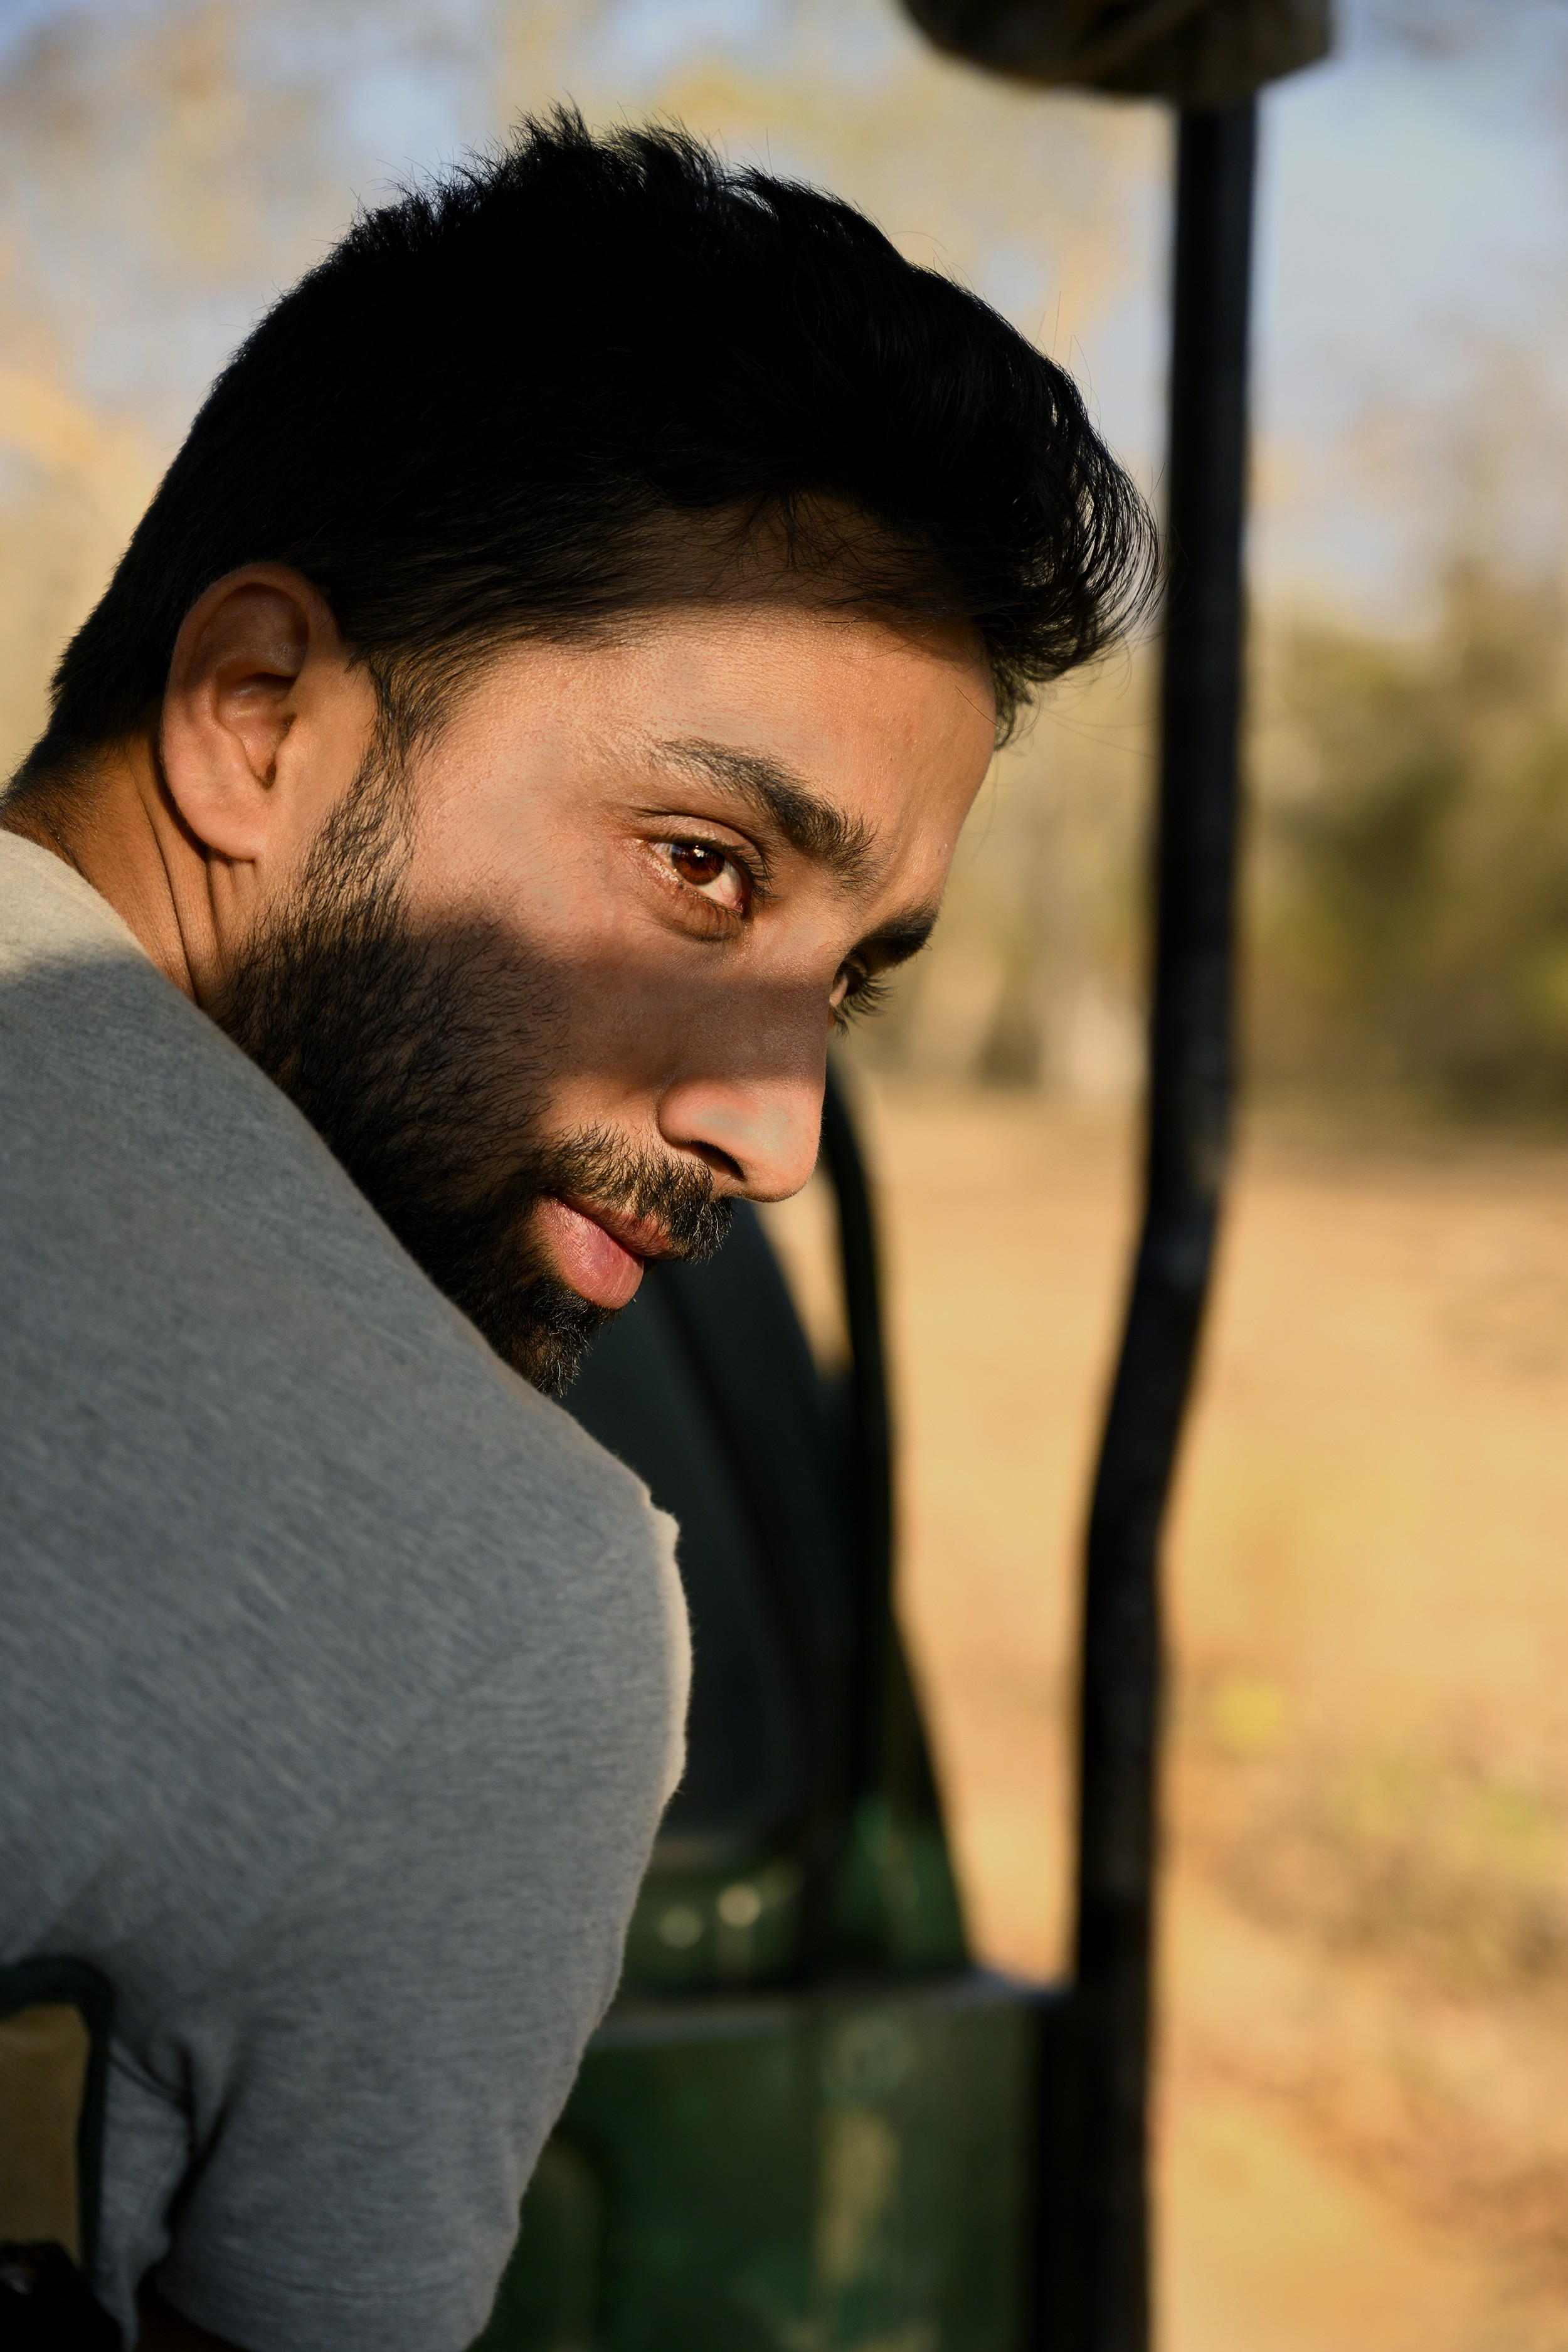 Mithun, outside in the desert, seen in profile from over his shoulder, shadows falling across his face.